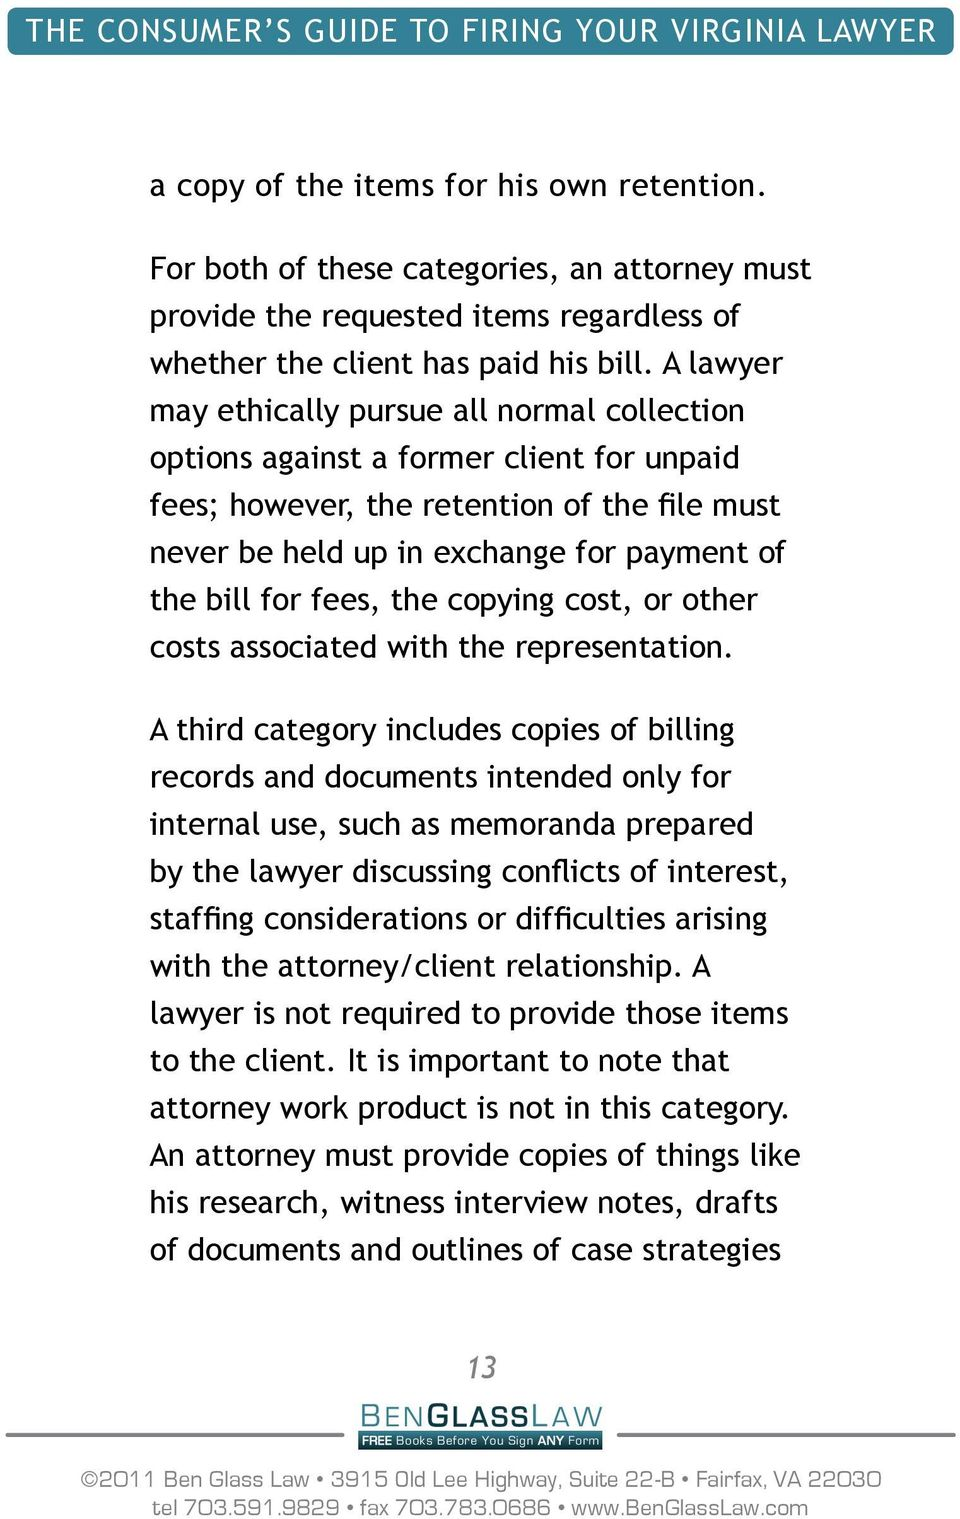 A lawyer may ethically pursue all normal collection options against a former client for unpaid fees; however, the retention of the file must never be held up in exchange for payment of the bill for